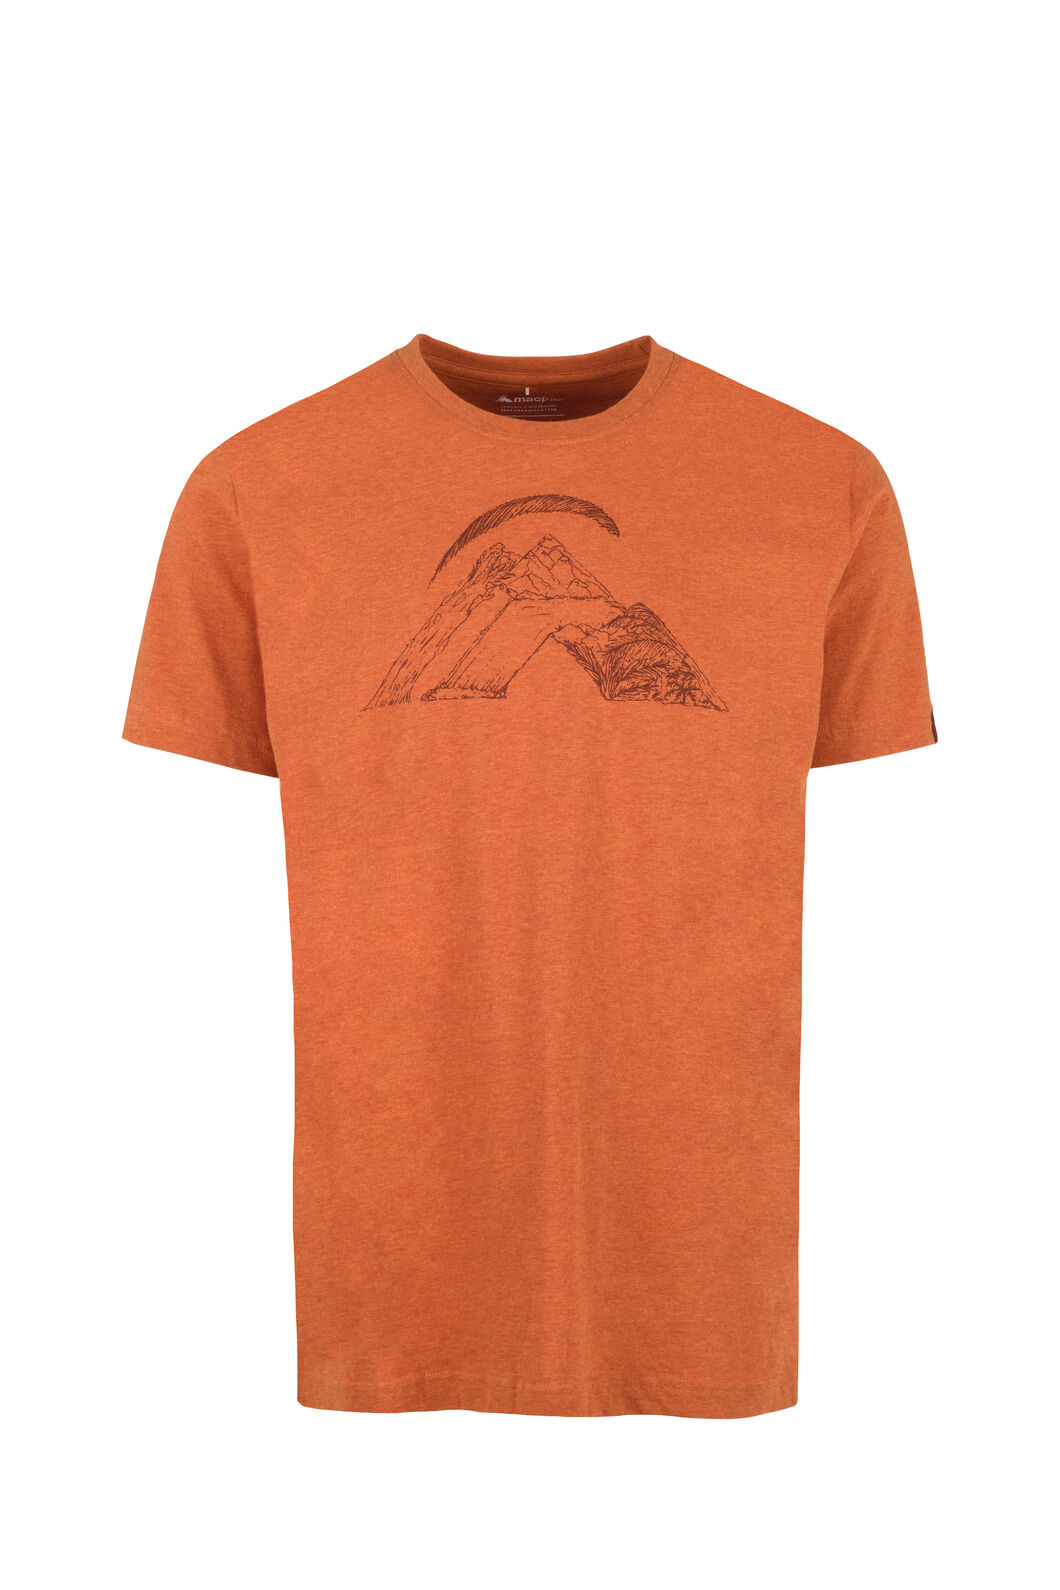 Macpac Nature Fairtrade Organic Cotton Tee — Men's, Burnt Orange, hi-res